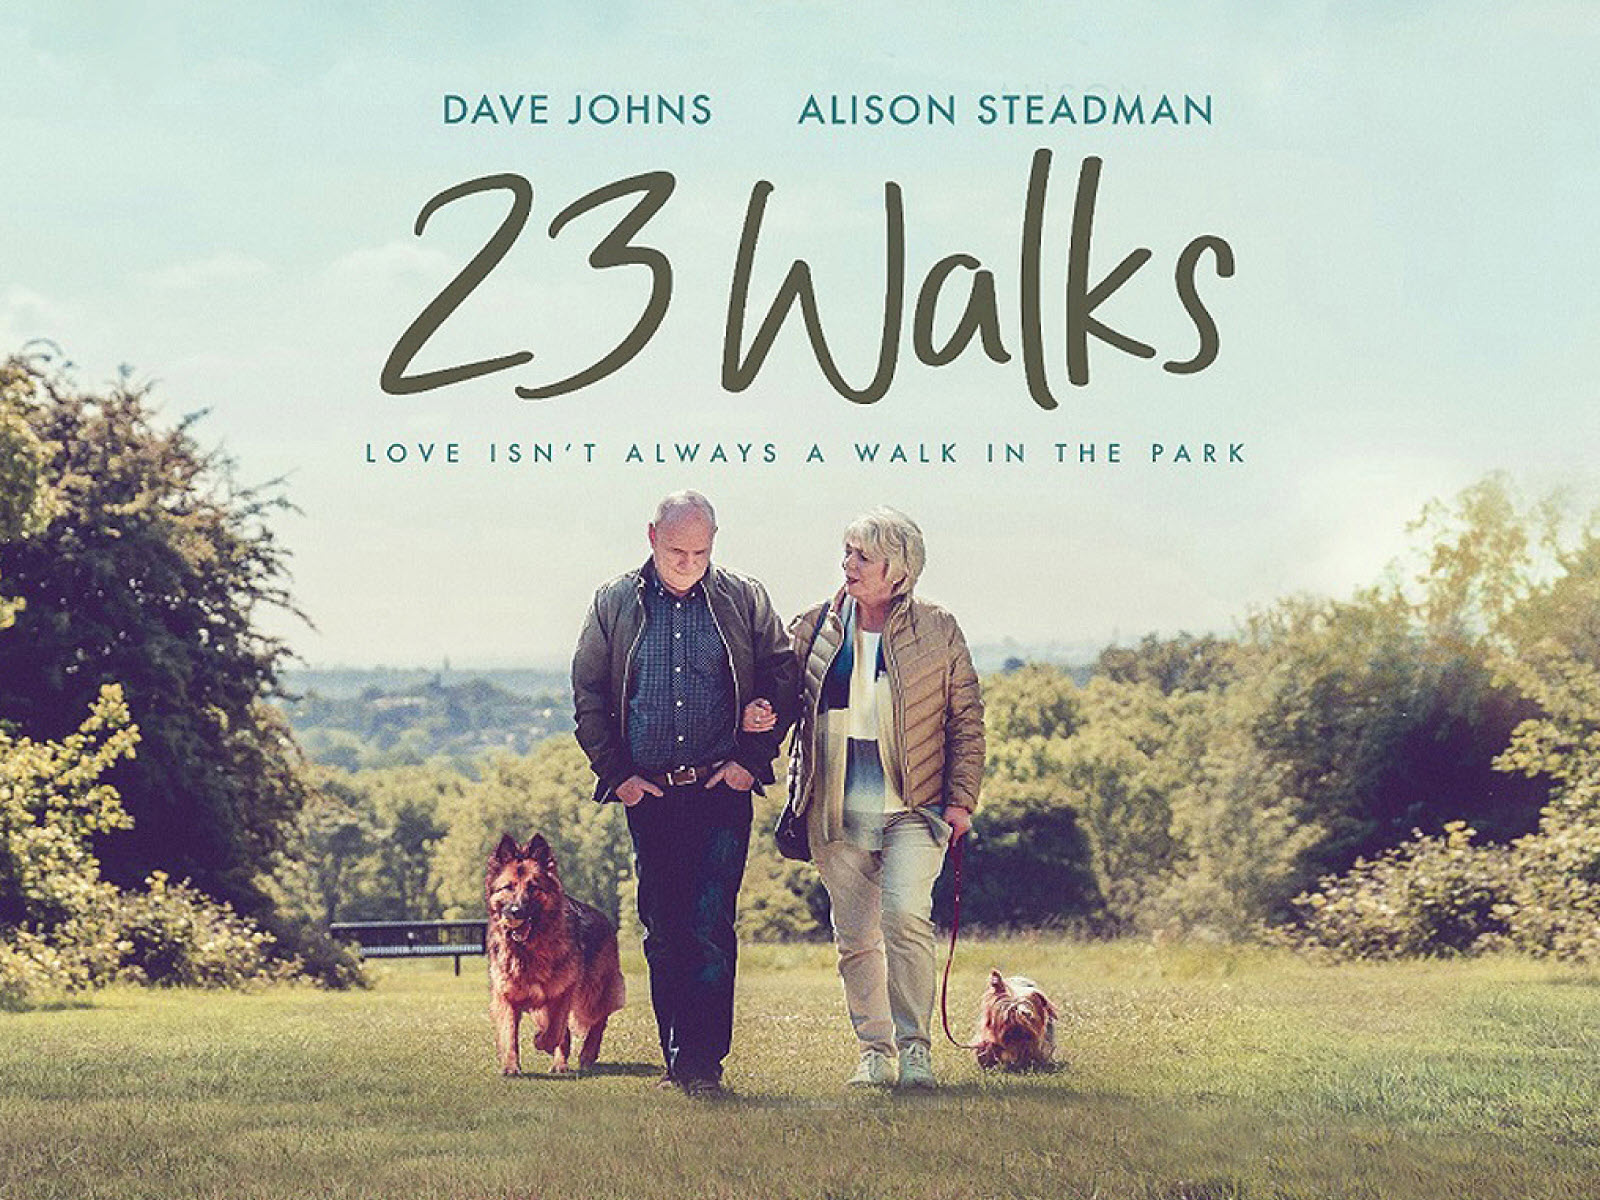 A chance encounter leads to a budding romance between a pair of dog walkers...